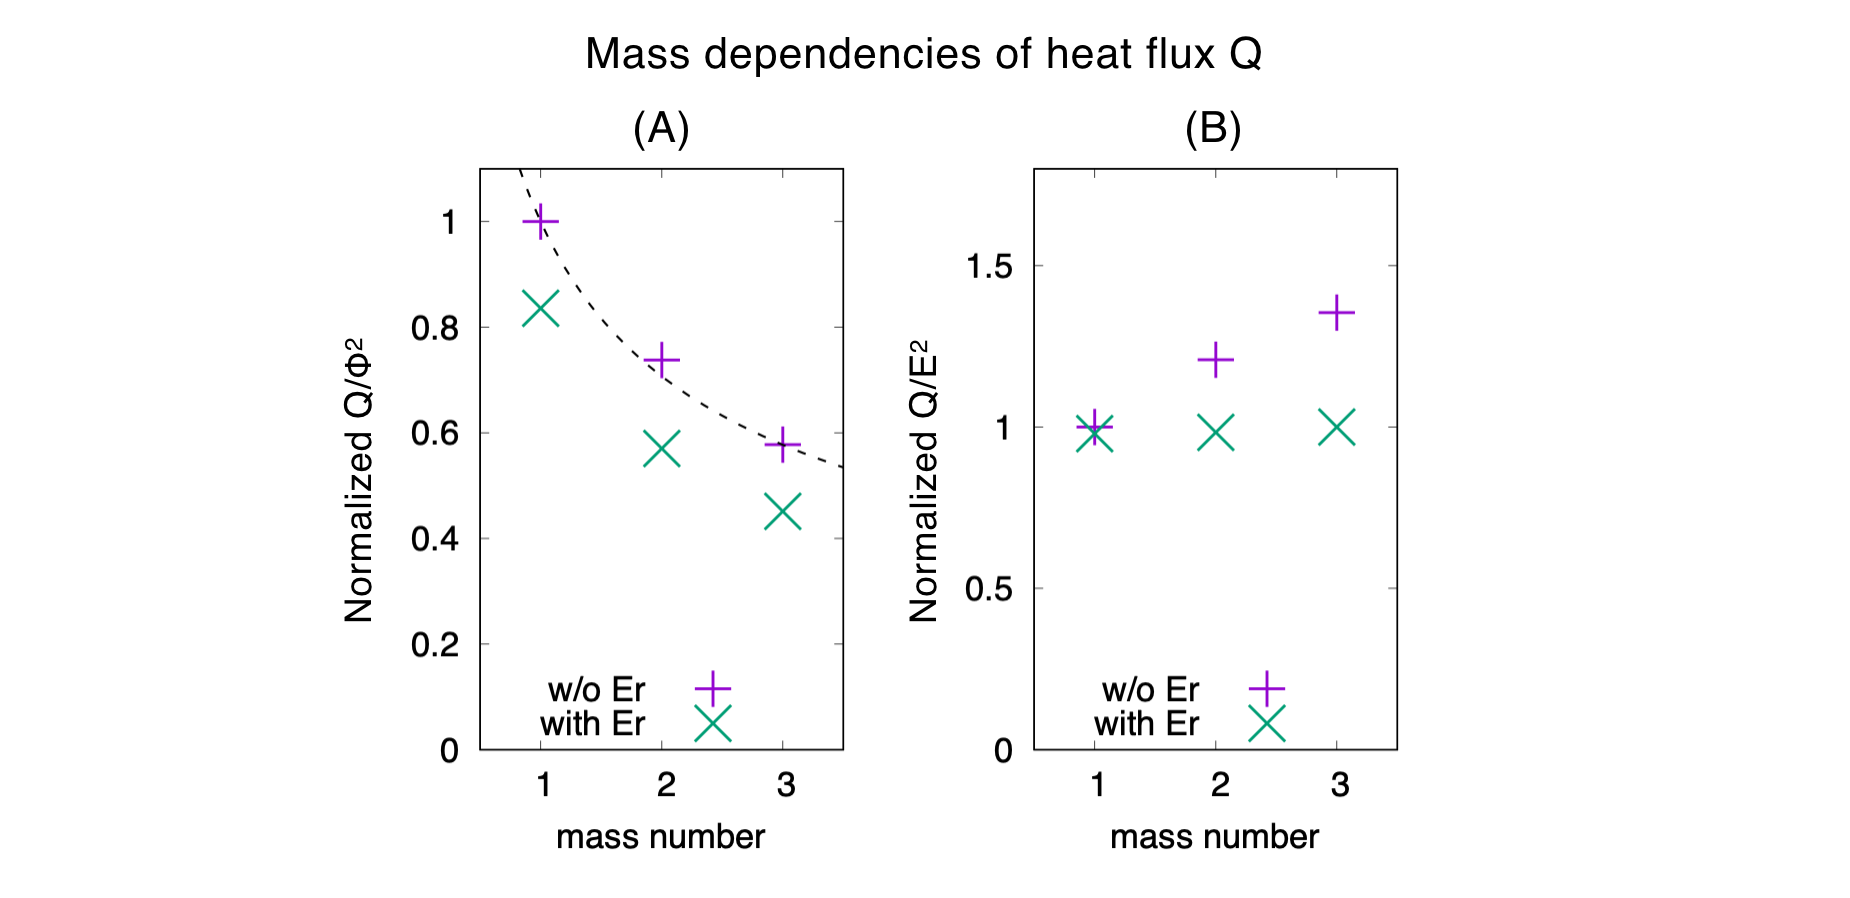 (A) Normalized heat flux ($Q/\Phi^{2}$) as a function of the mass number. The dashed line indicates a decrease inversely proportional to the square root of mass number. (B) Normalized heat flux ($Q/E^{2}$) as a function of mass number.